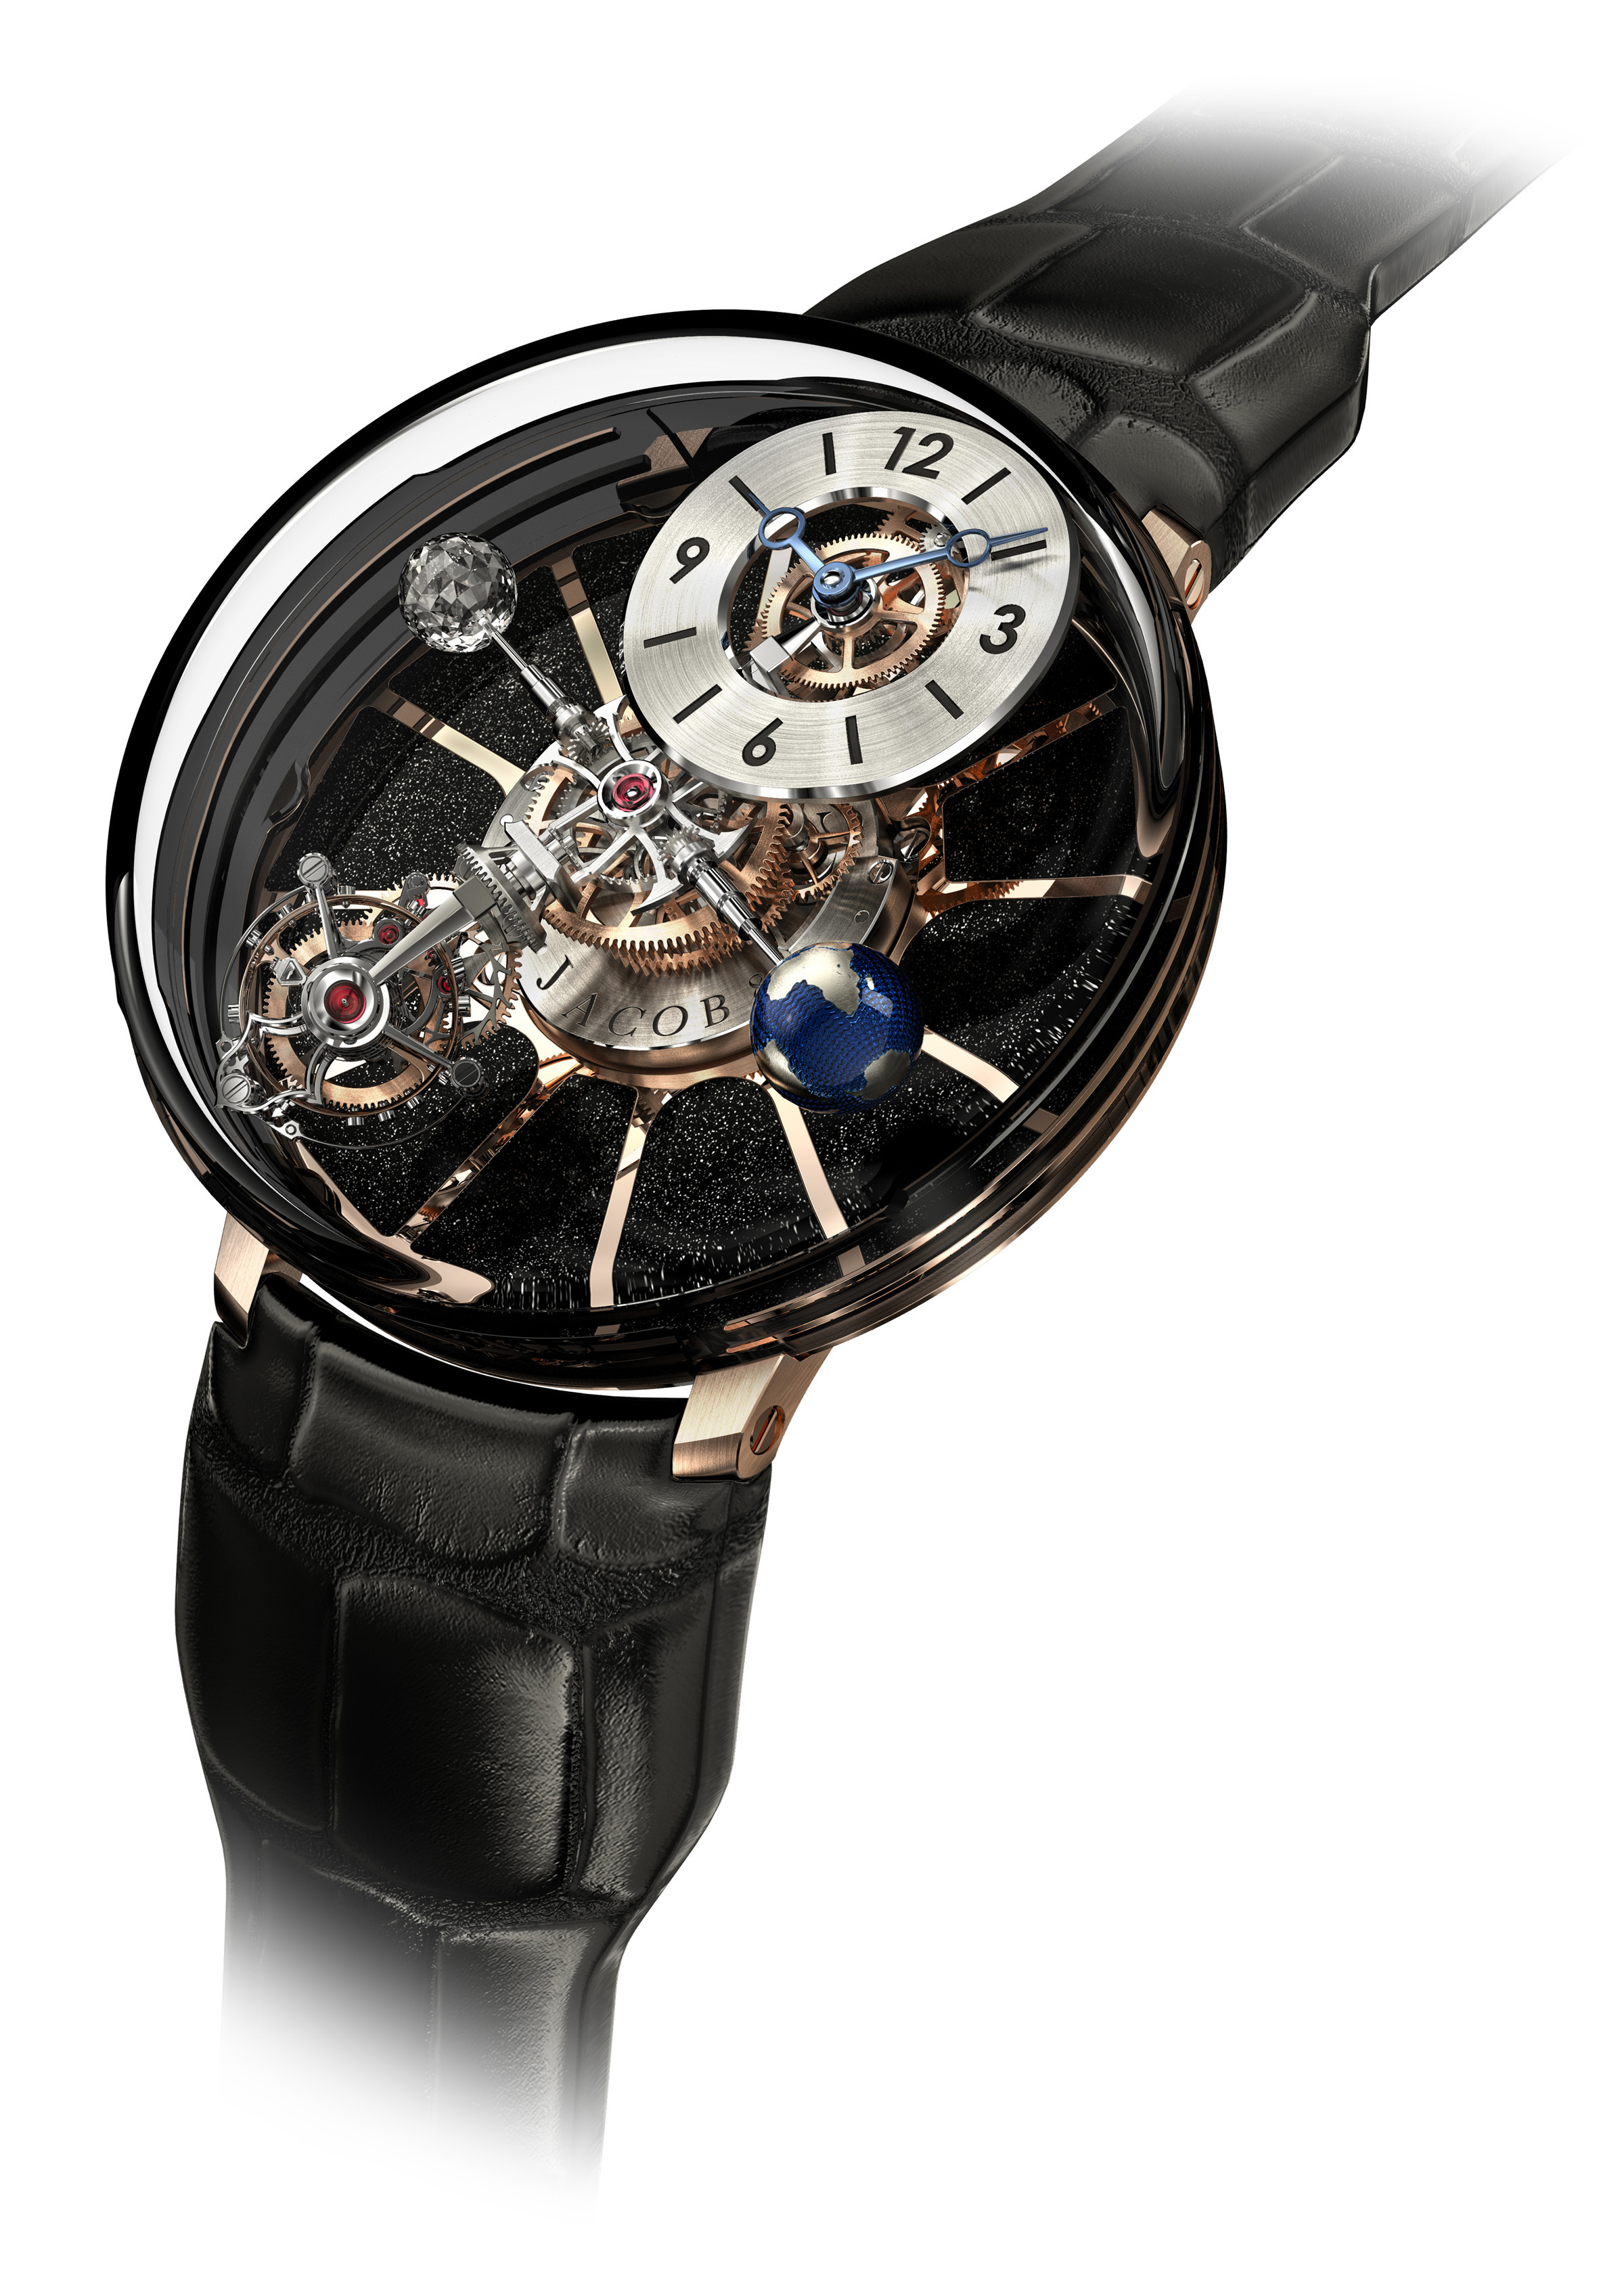 Jacob & Co Astronomia Tourbillon is a complex system of axes and indications.